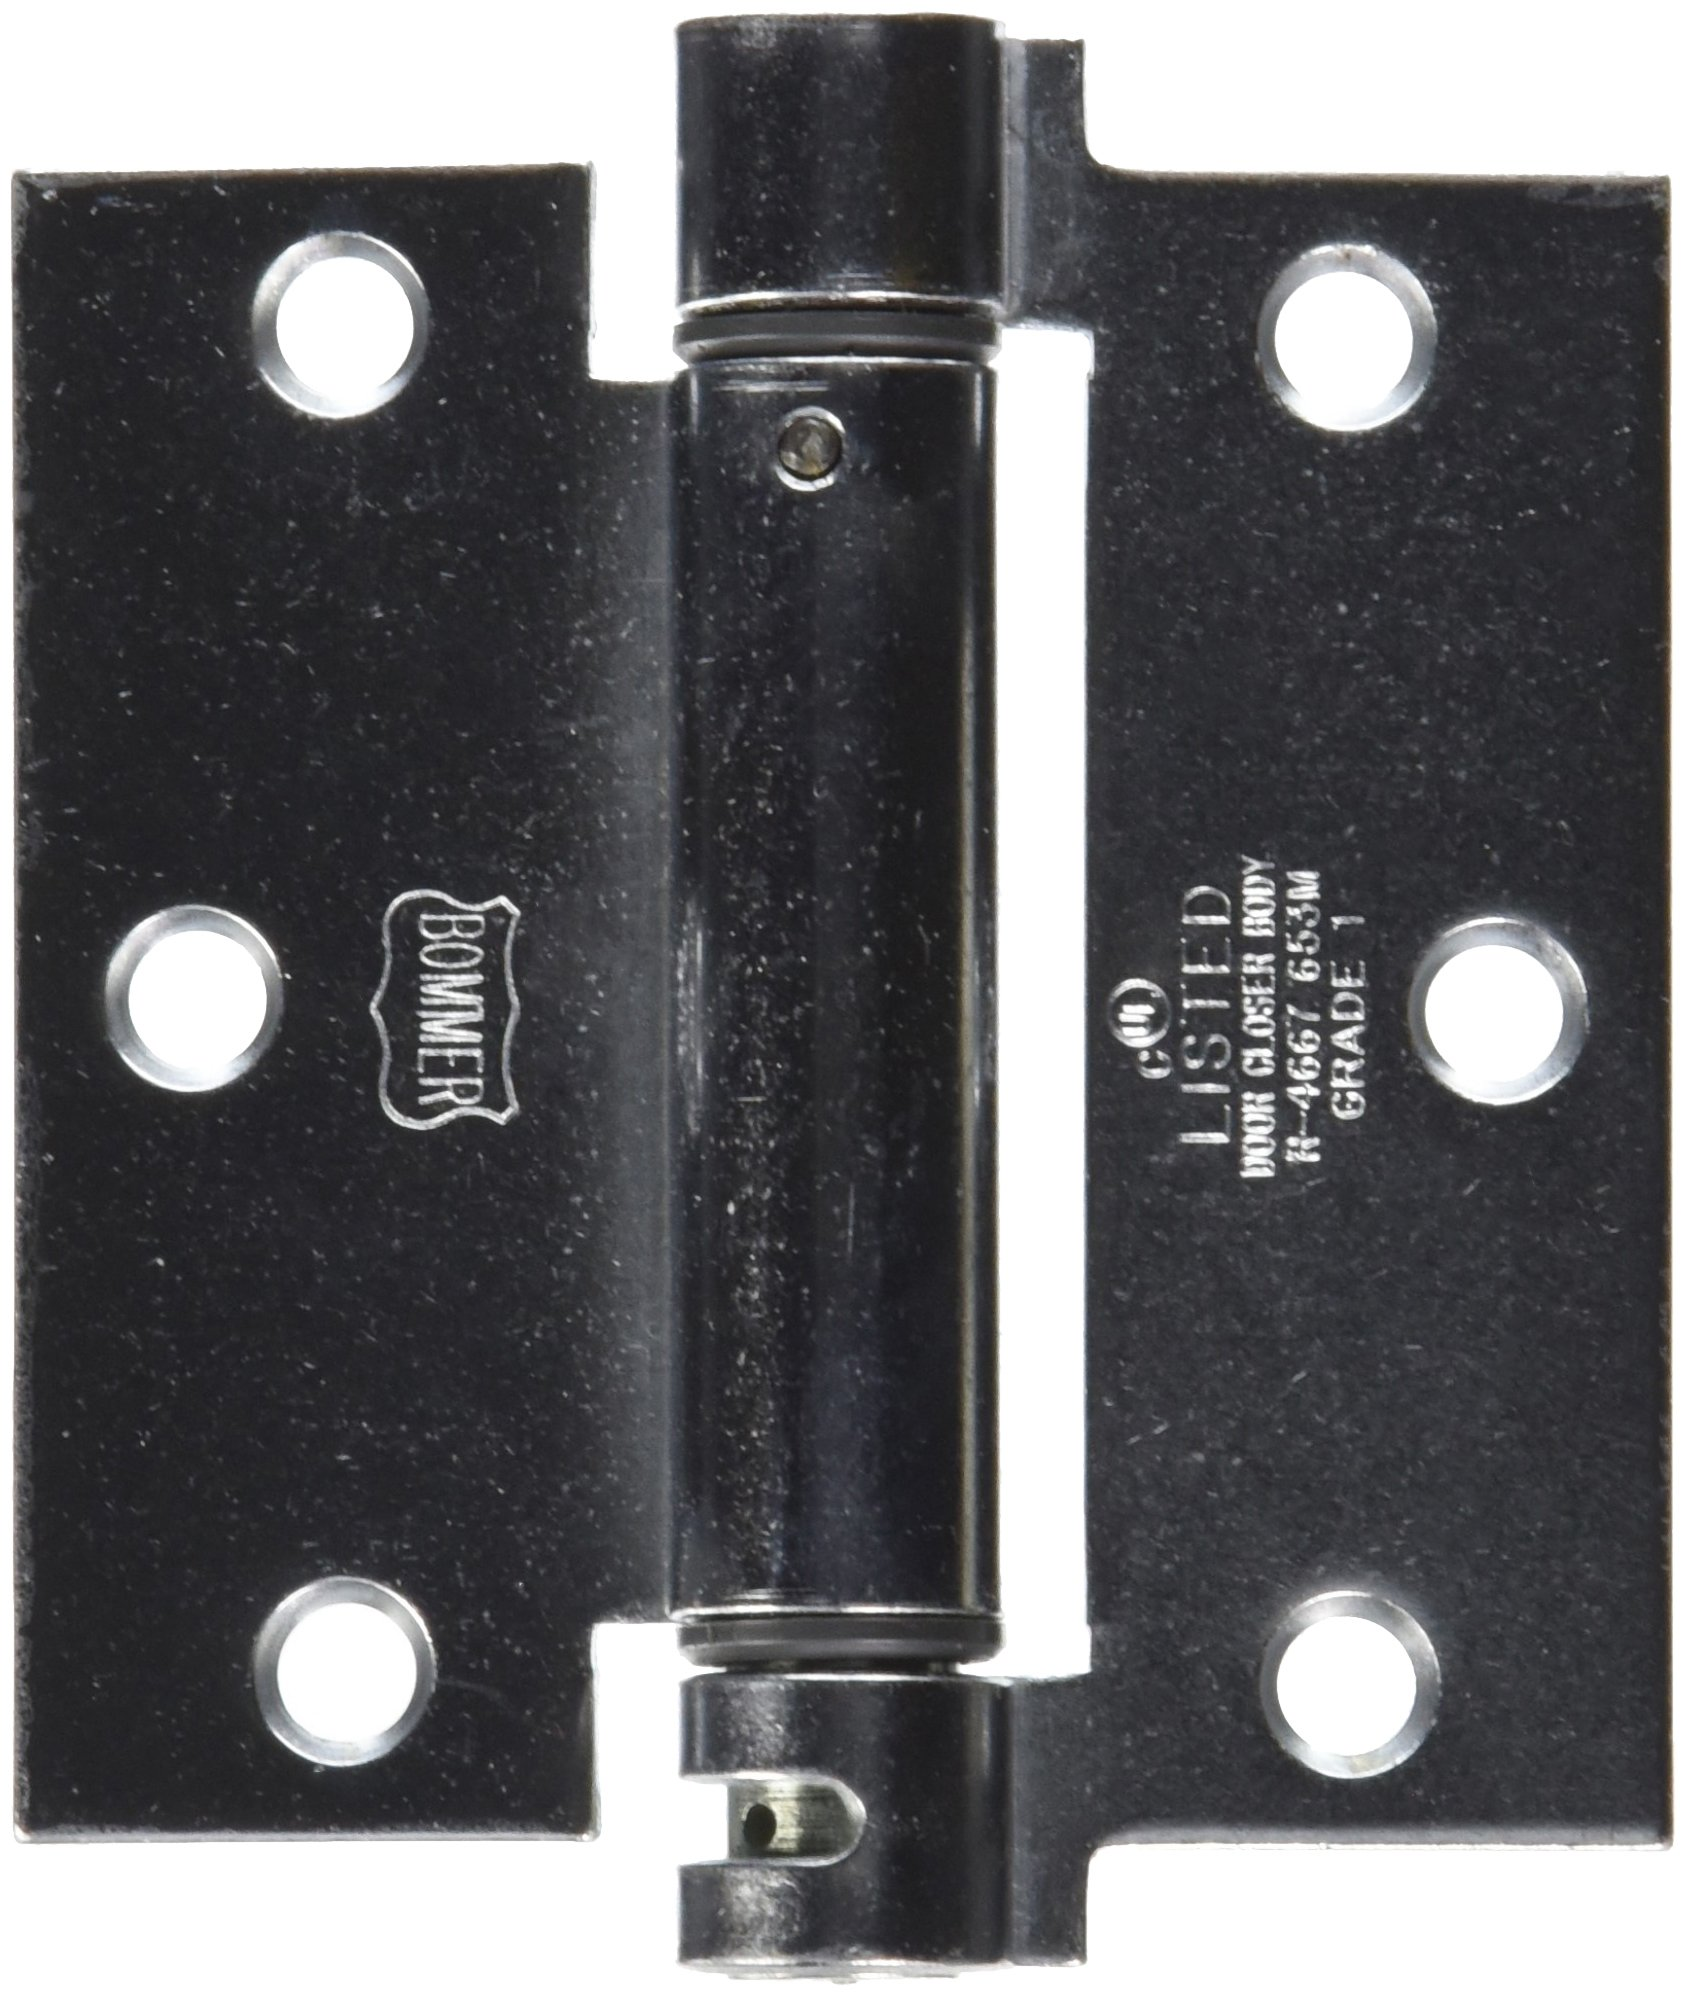 Bommer Lube Bearing LB4300 Series Steel Full Mortise Mounting Type Single Acting Spring Hinge, Square Corner, 3.5'' x 3.5'' Hinge Size, Satin Chrome Finish